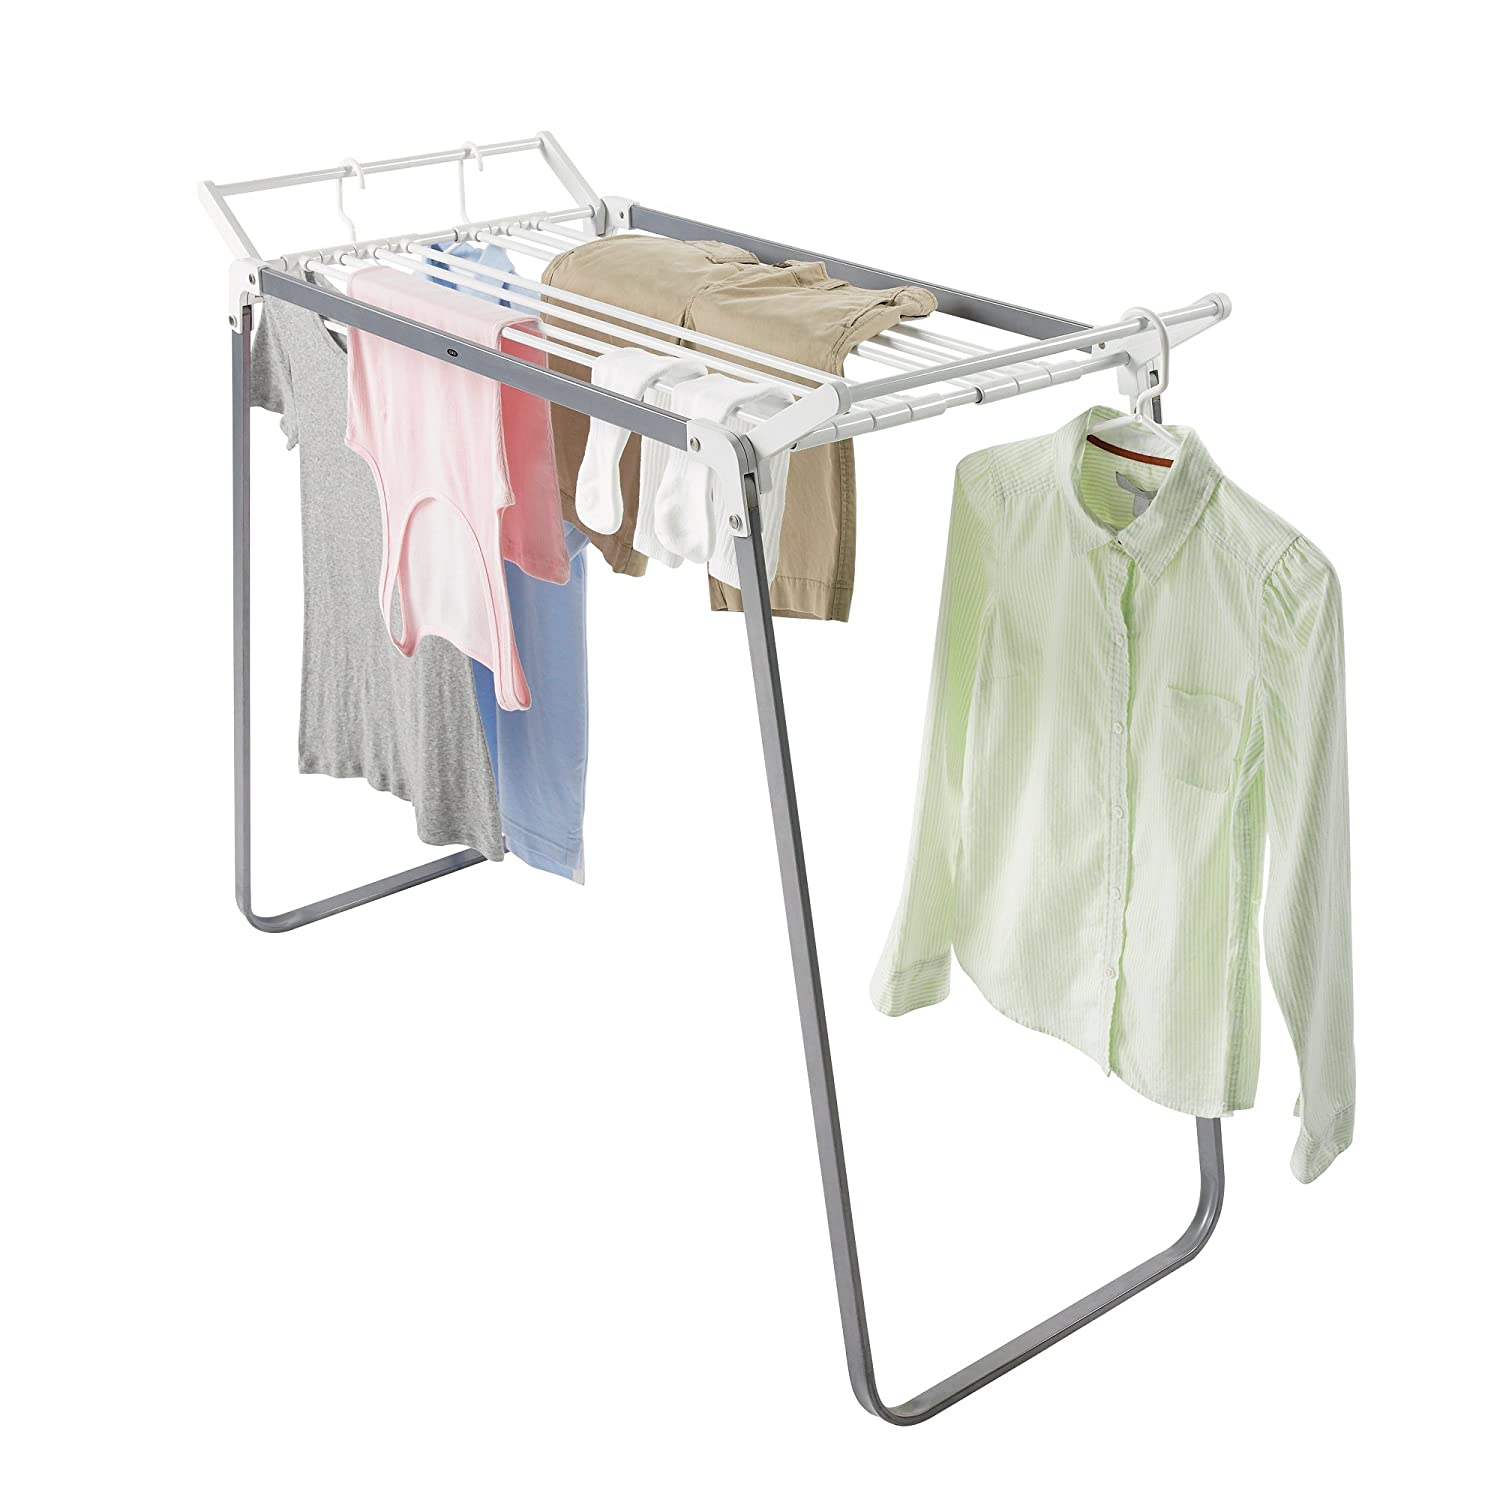 Clothes drying rack for small spaces - Clothes storage for small spaces model ...